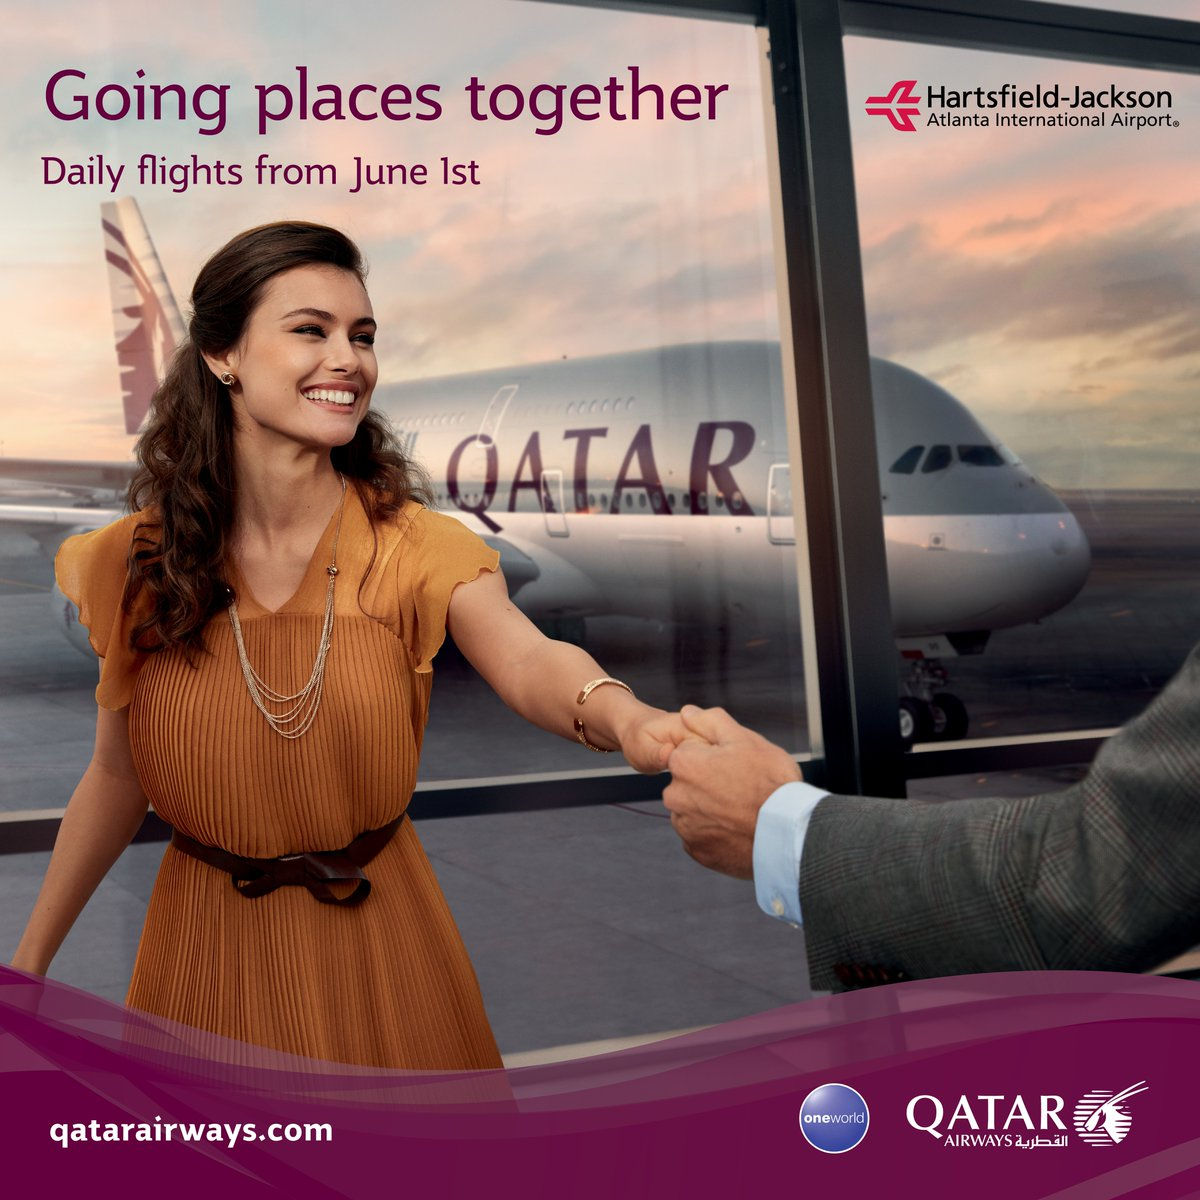 Starting today, June 1st, ATL will offer daily flights on @qatarairways.Book your trip here